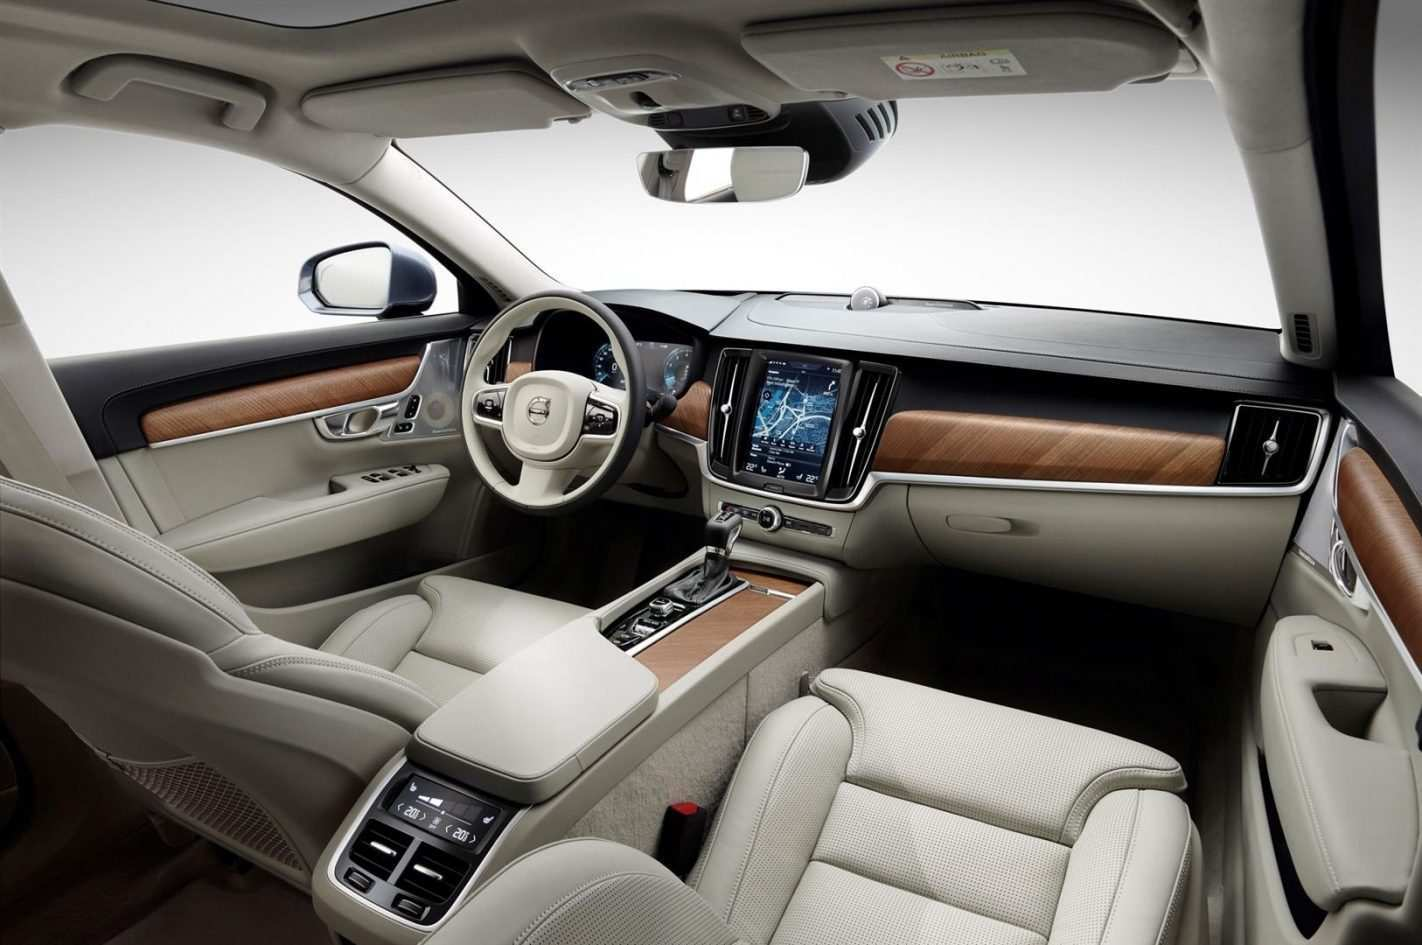 74 Concept of Volvo Xc90 2019 Interior History for Volvo Xc90 2019 Interior